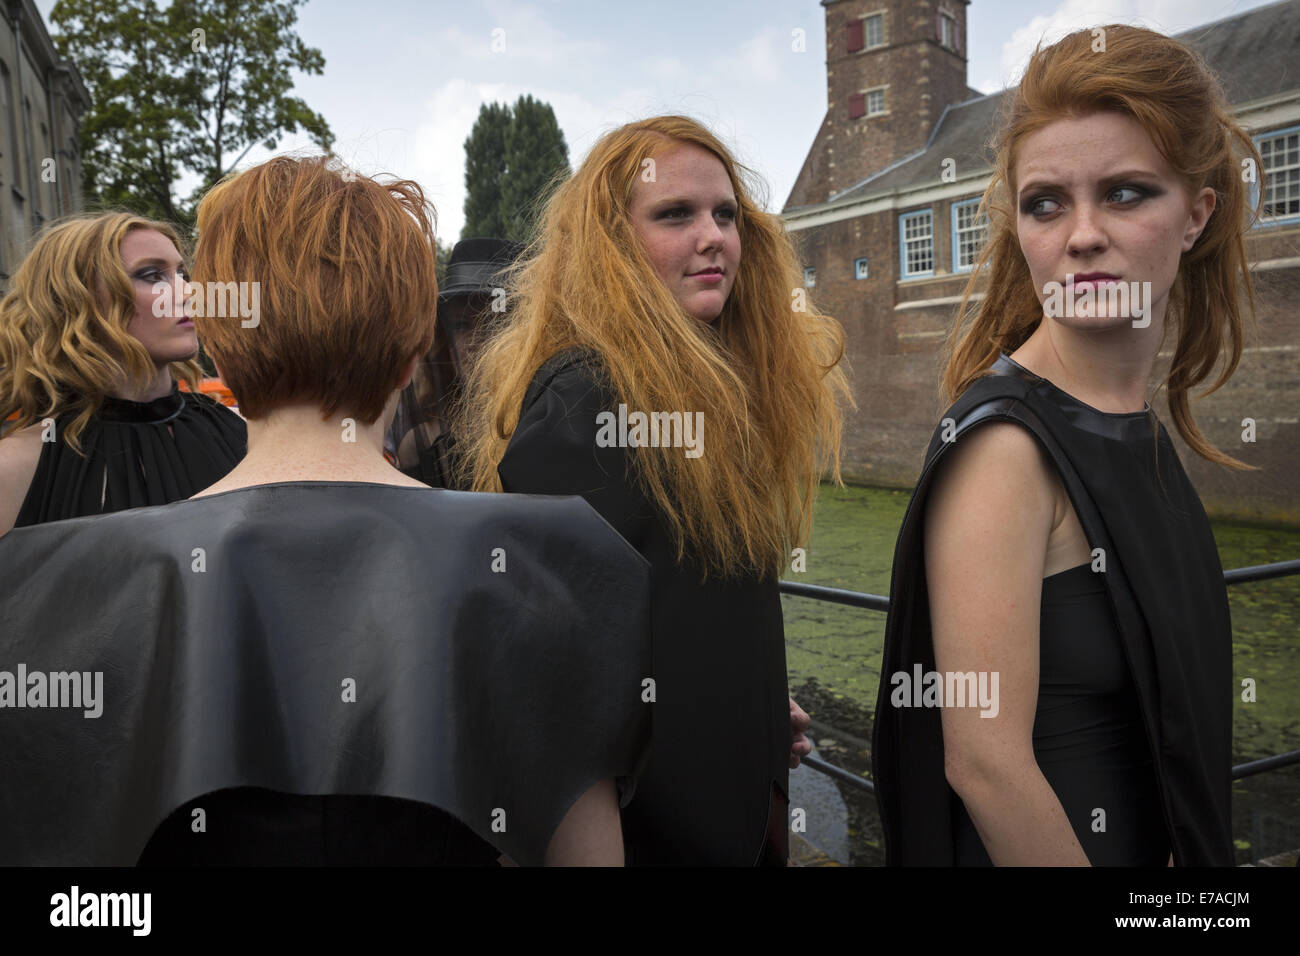 A group of models waiting to participate in one of the fashion shows held during the festival of redheads - Stock Image